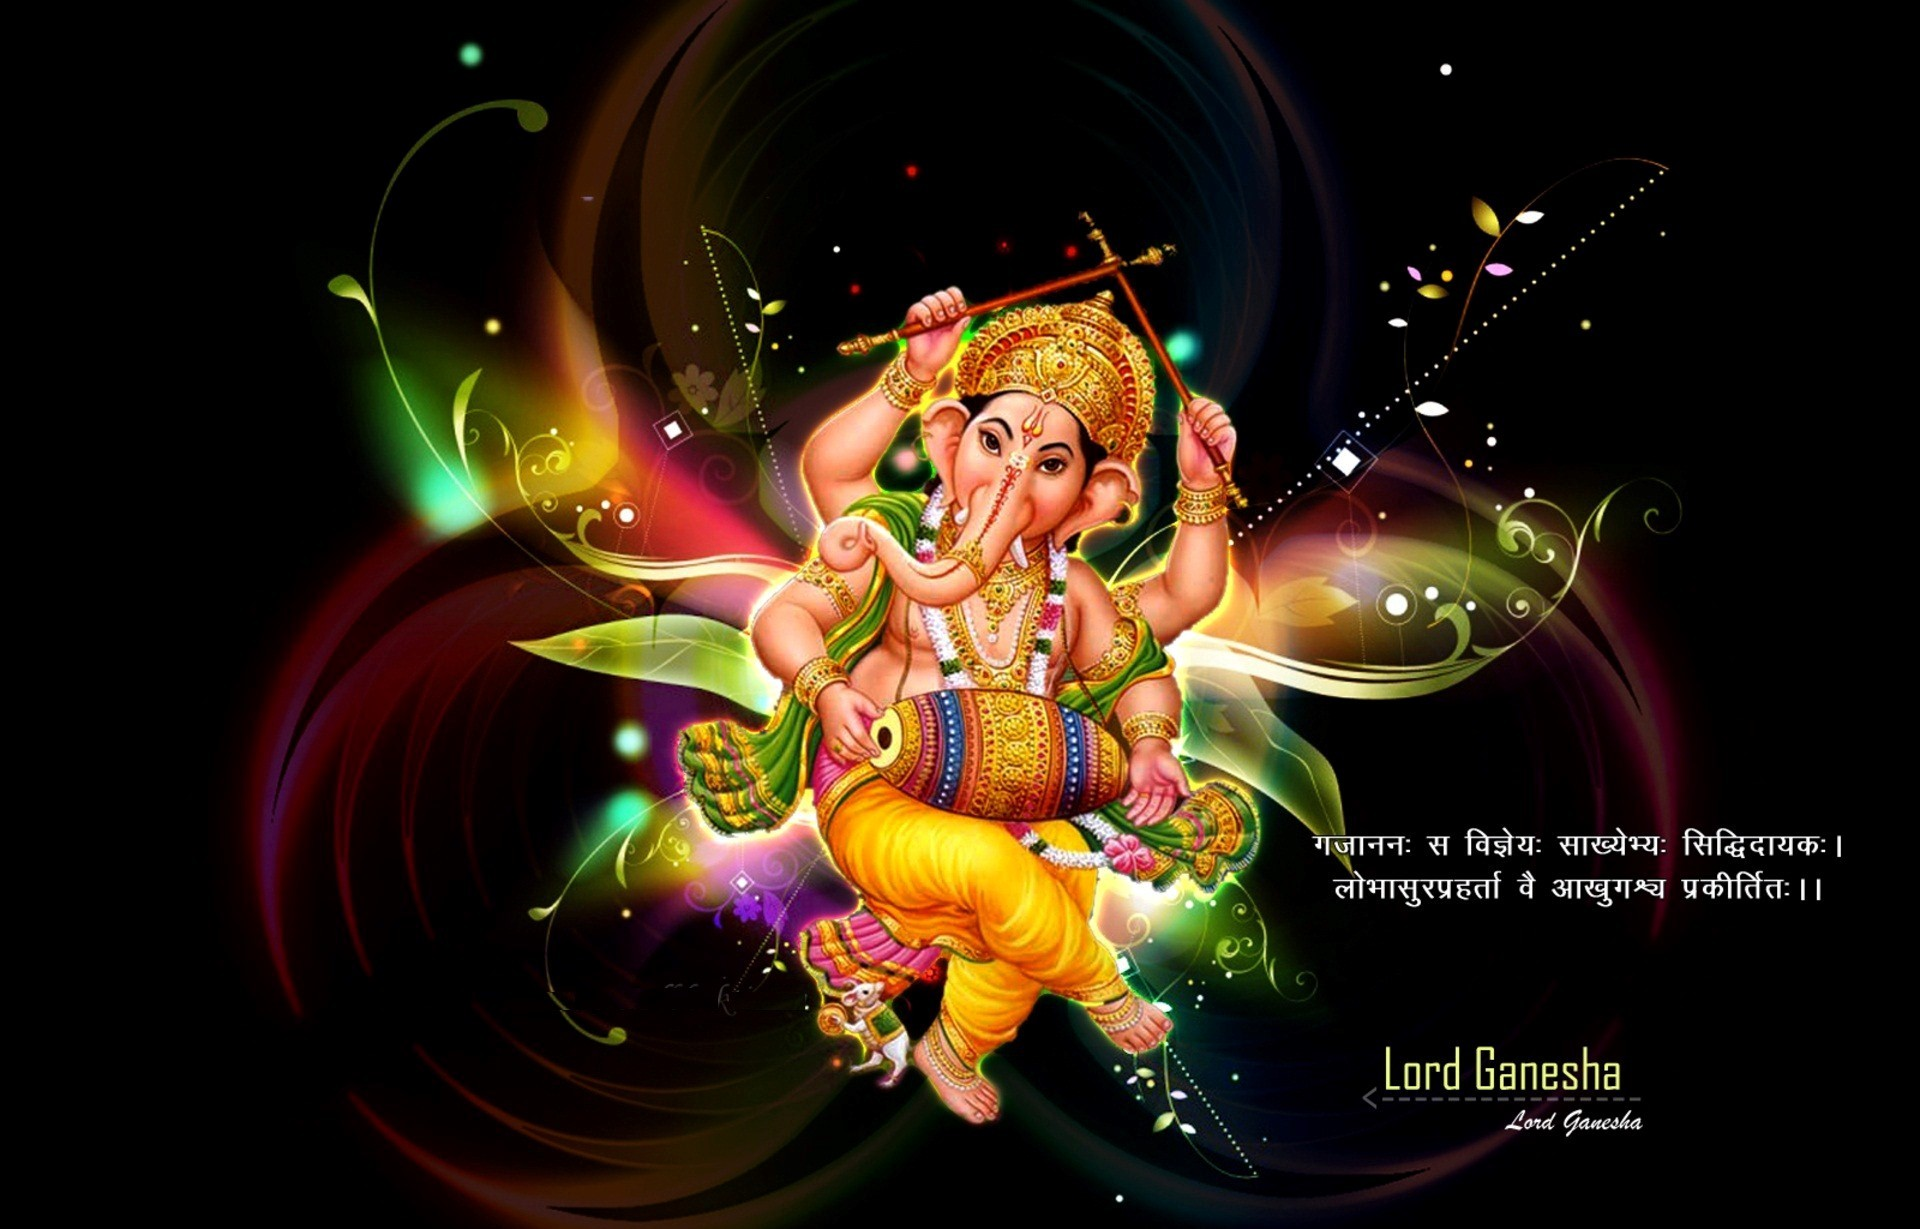 Pictures Of Lord Ganesha Wallpapers (64+ Images